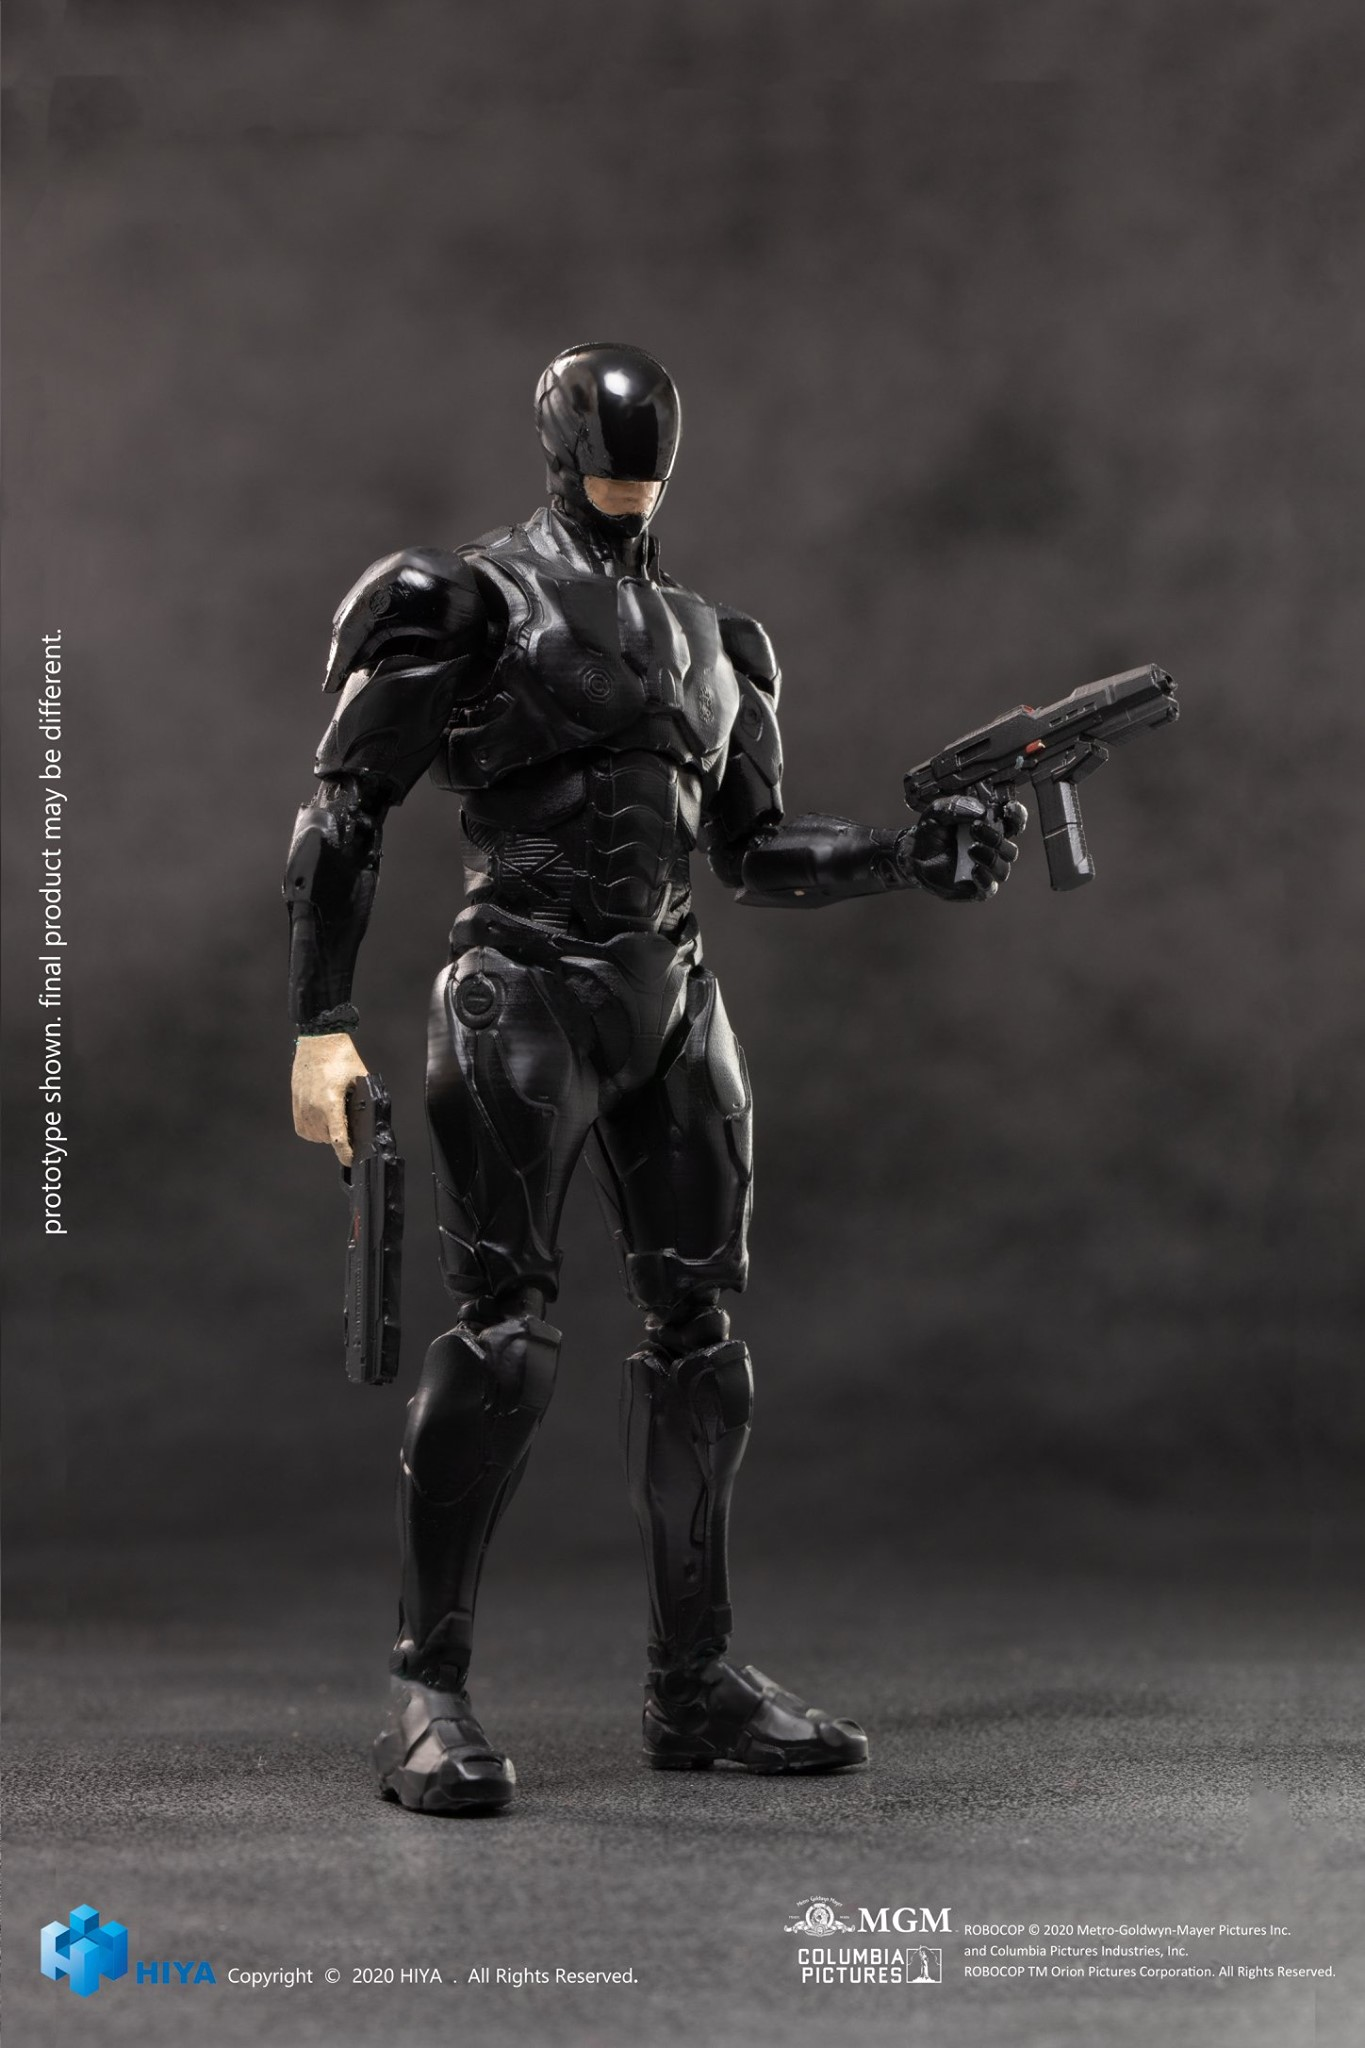 Hiya Robocop 2014 Preview